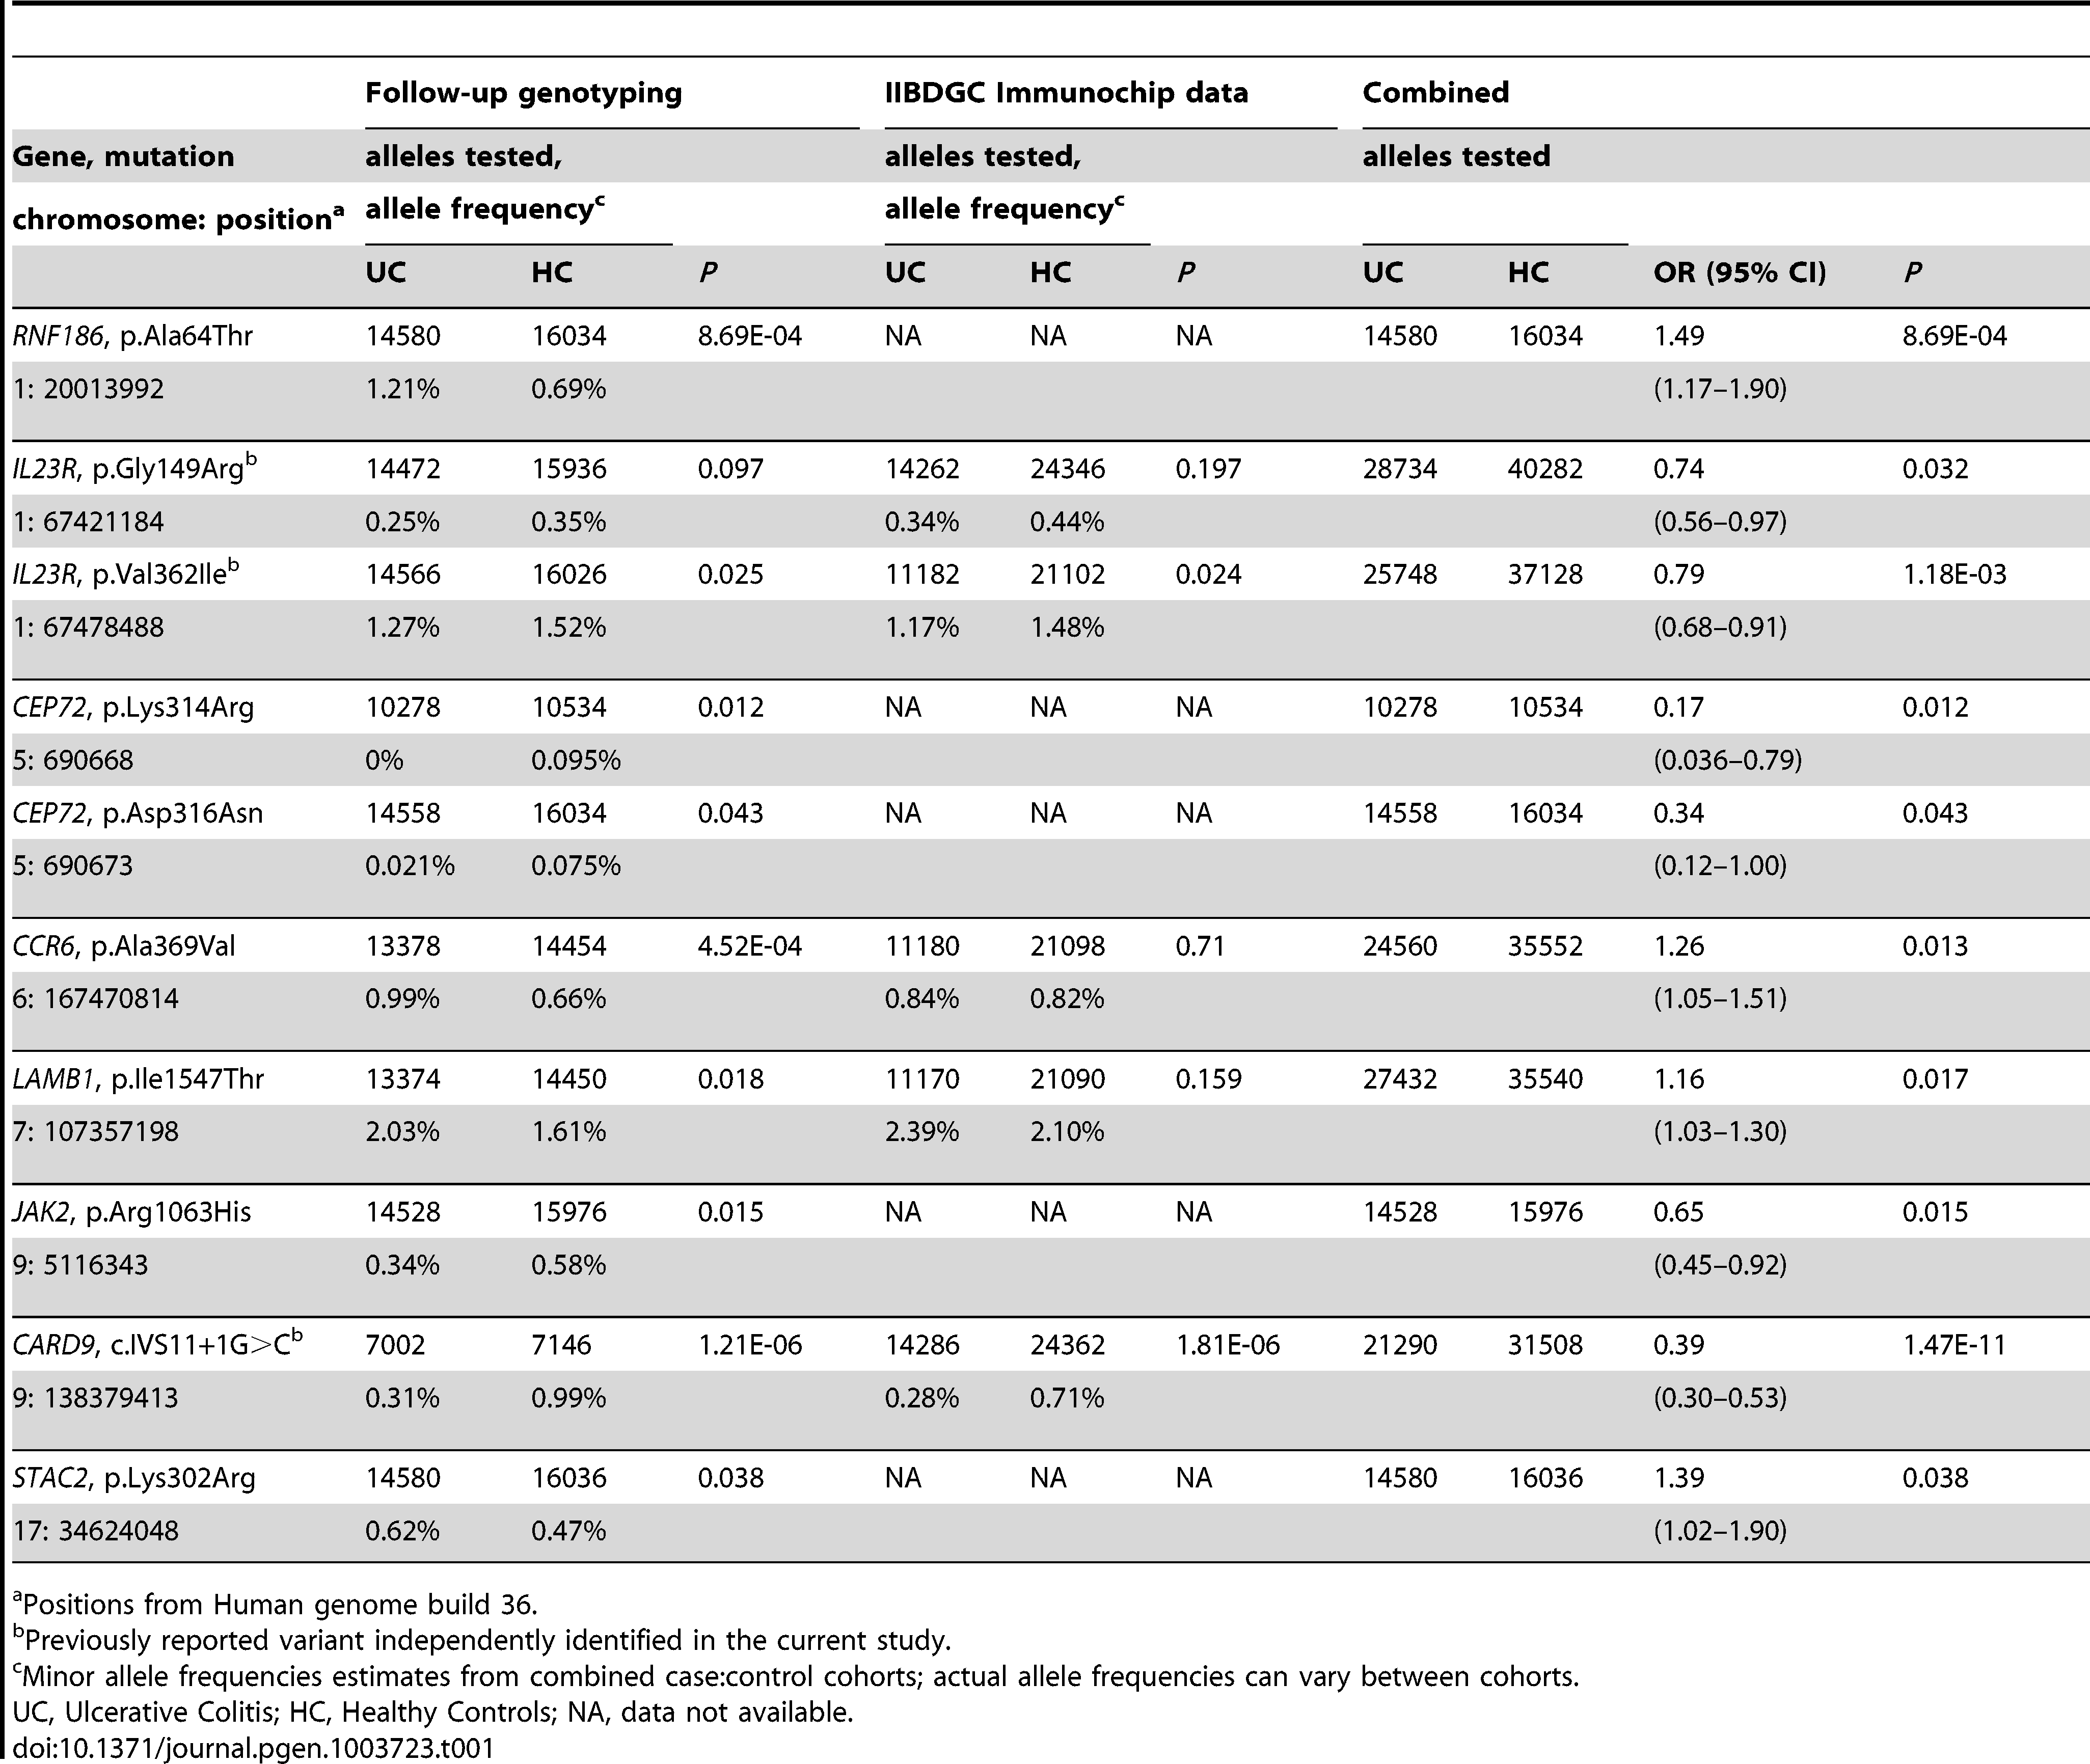 Identification of rare variants associated with ulcerative colitis.